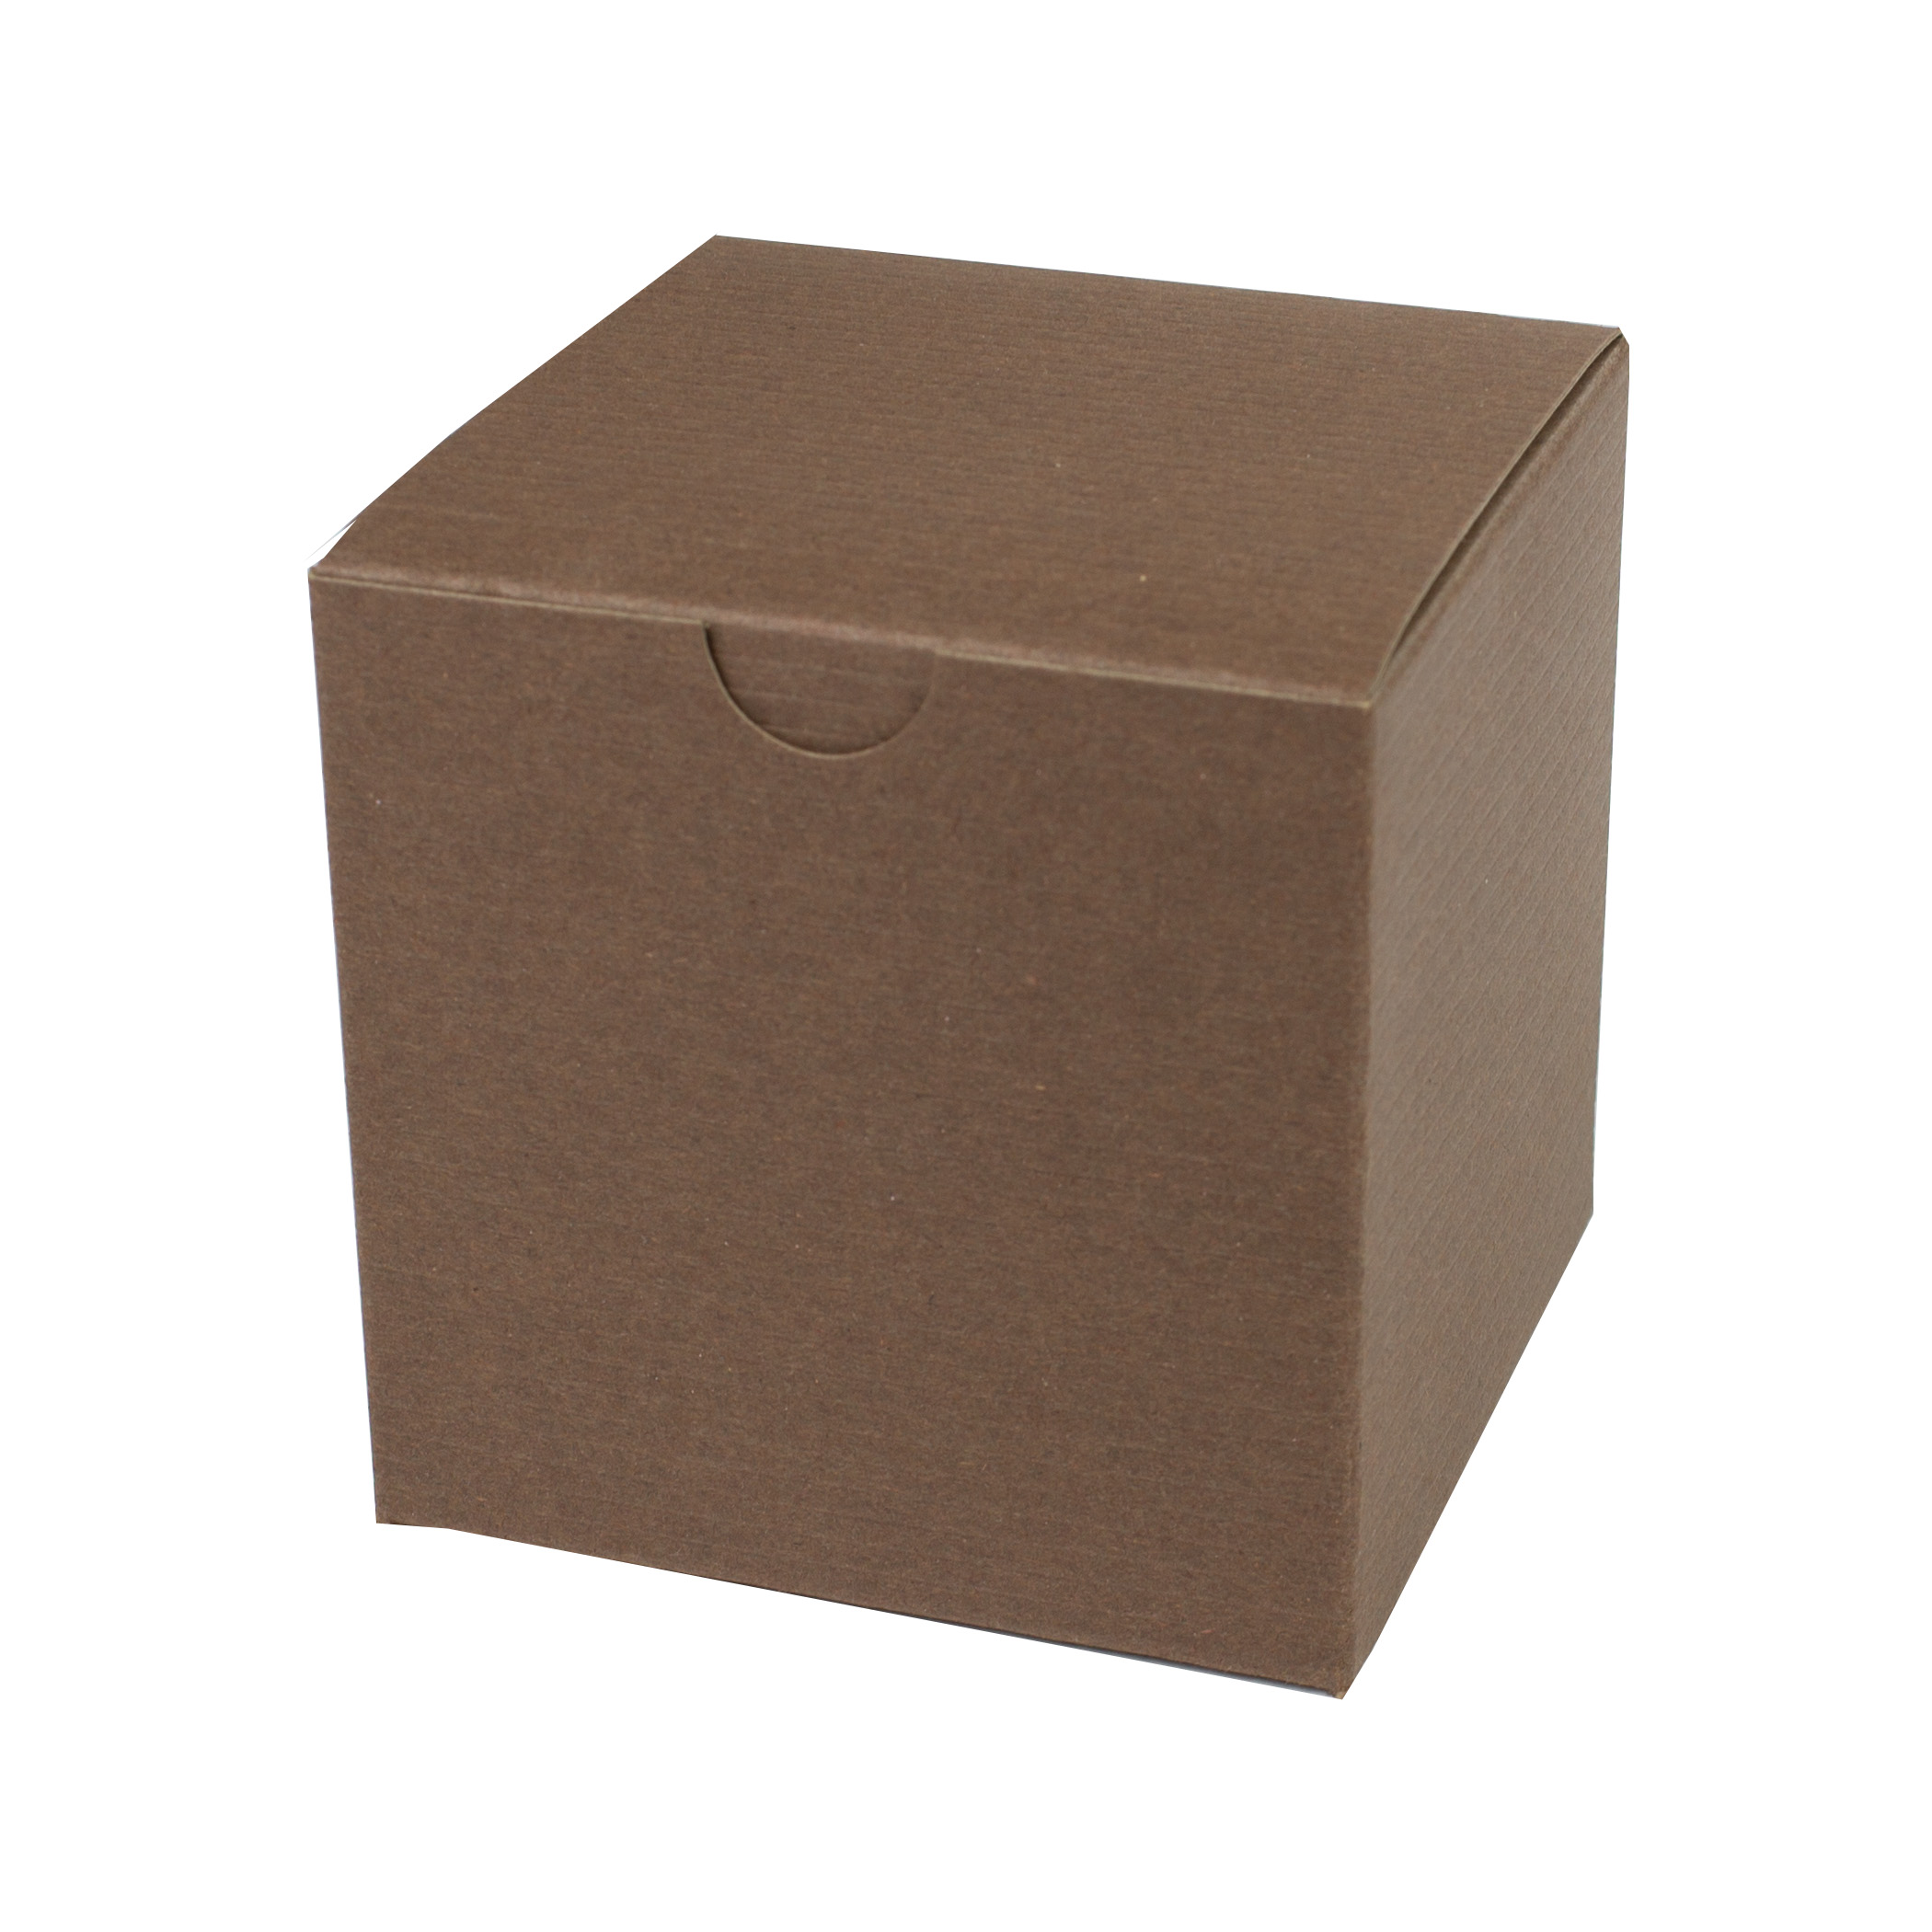 4 x 4 x 4 COCOA TINTED TUCK-TOP GIFT BOXES